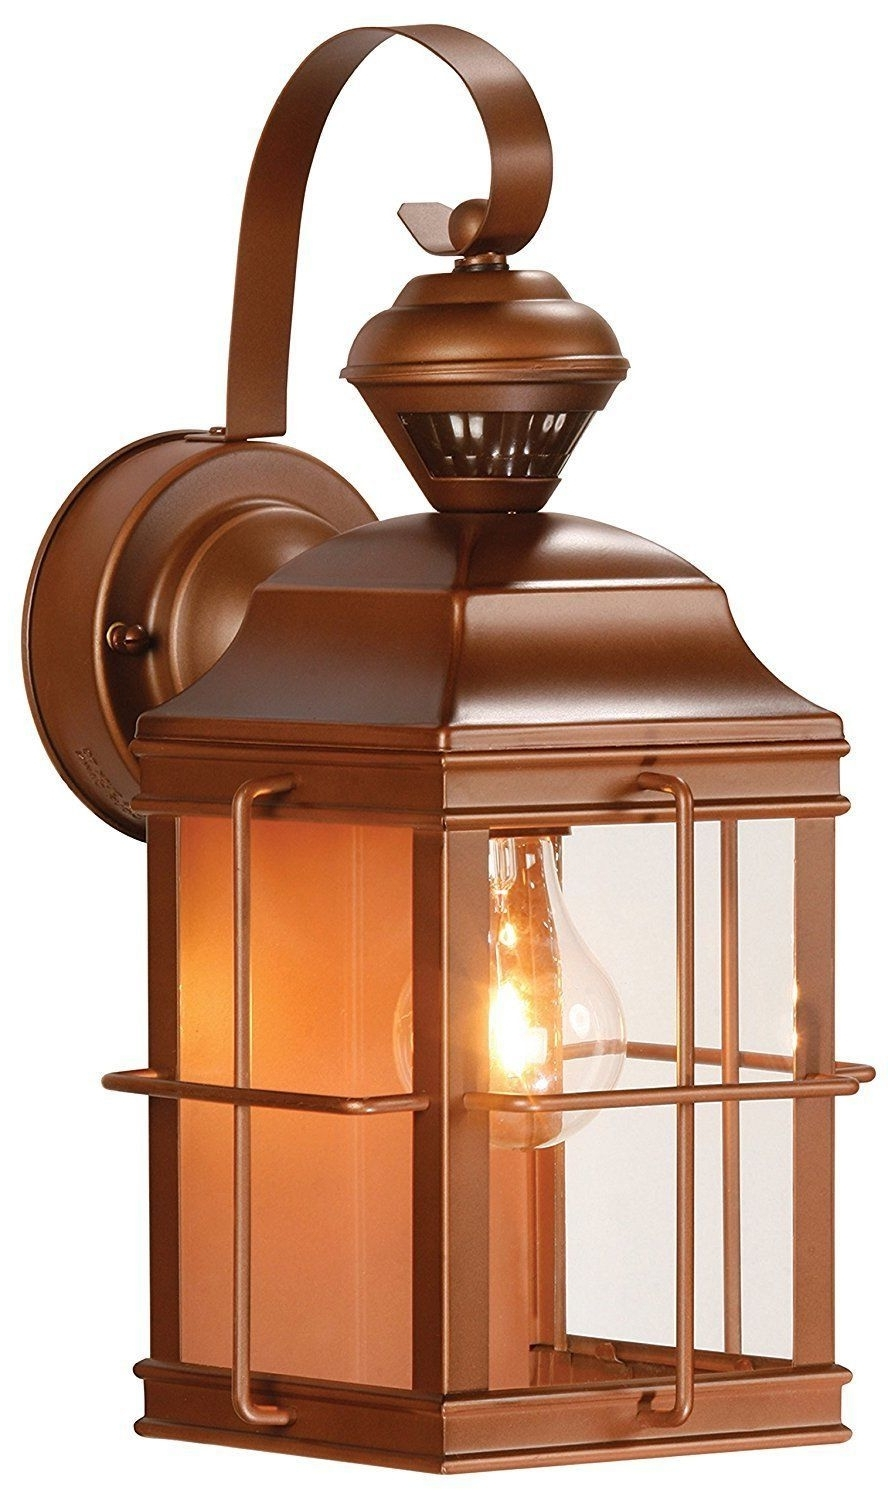 Porch Lantern Lamp Patio Lighting Bronze Wall Light Outdoor Weather With Regard To Most Popular Outdoor Weather Resistant Lanterns (View 5 of 20)